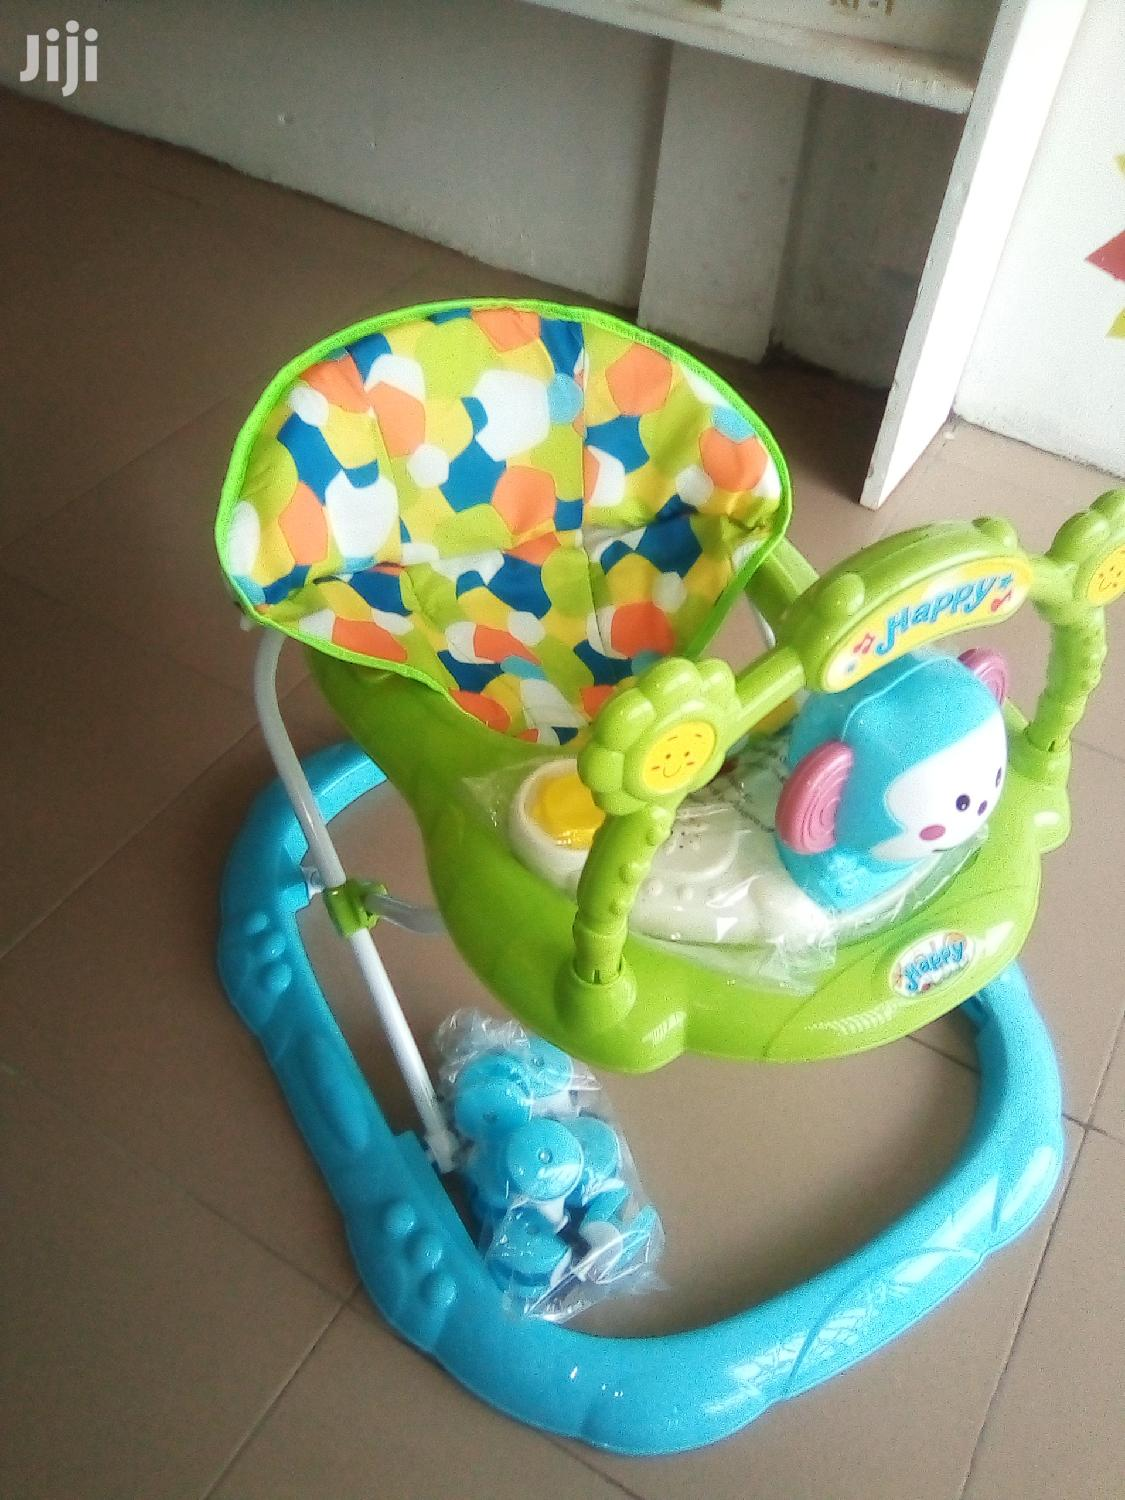 Baby Walker | Children's Gear & Safety for sale in Dansoman, Greater Accra, Ghana